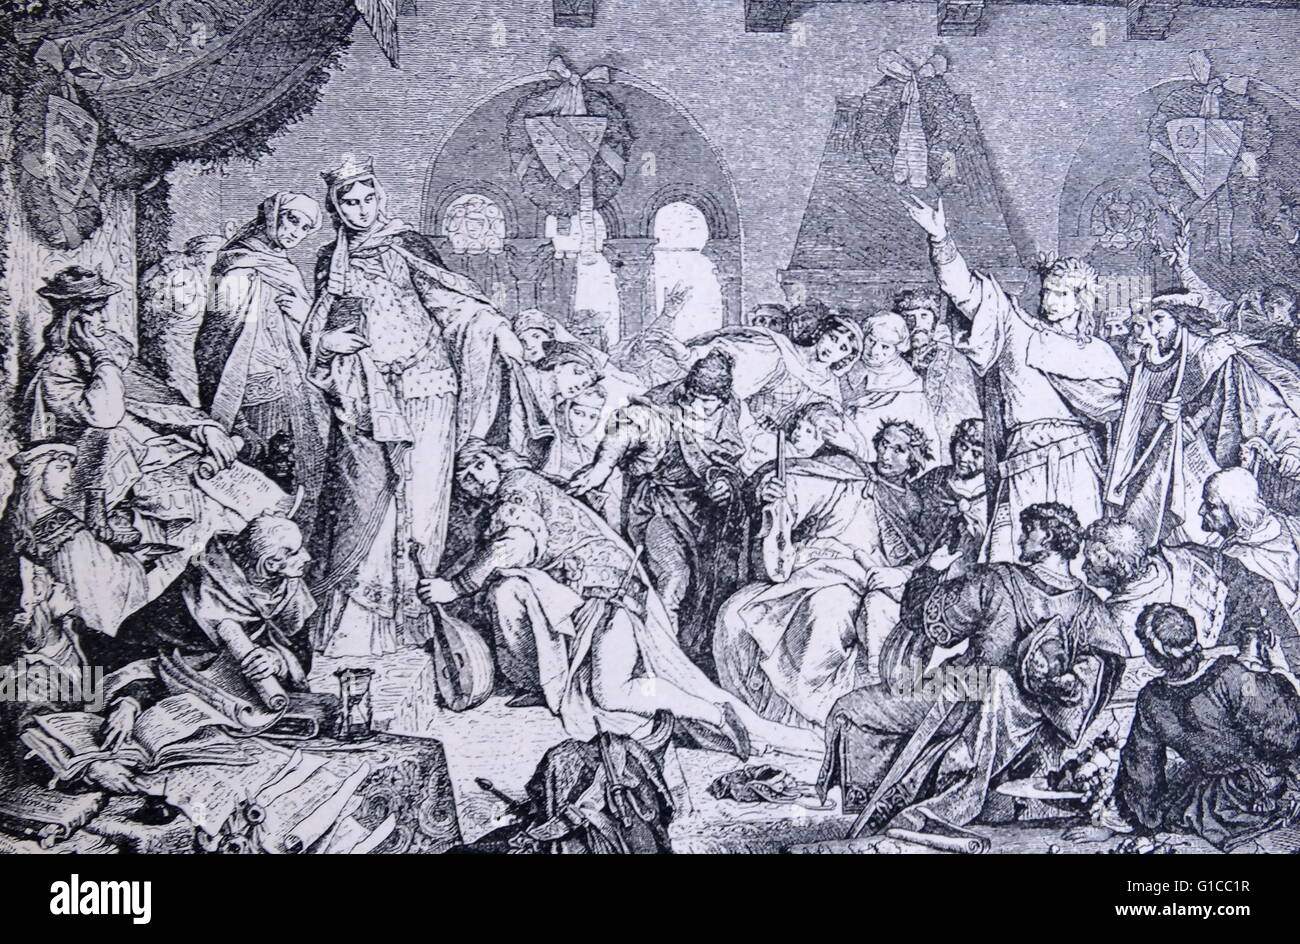 Engraving depicting a ballad-singing competition in the days of the troubadours, composers and performers of Old - Stock Image